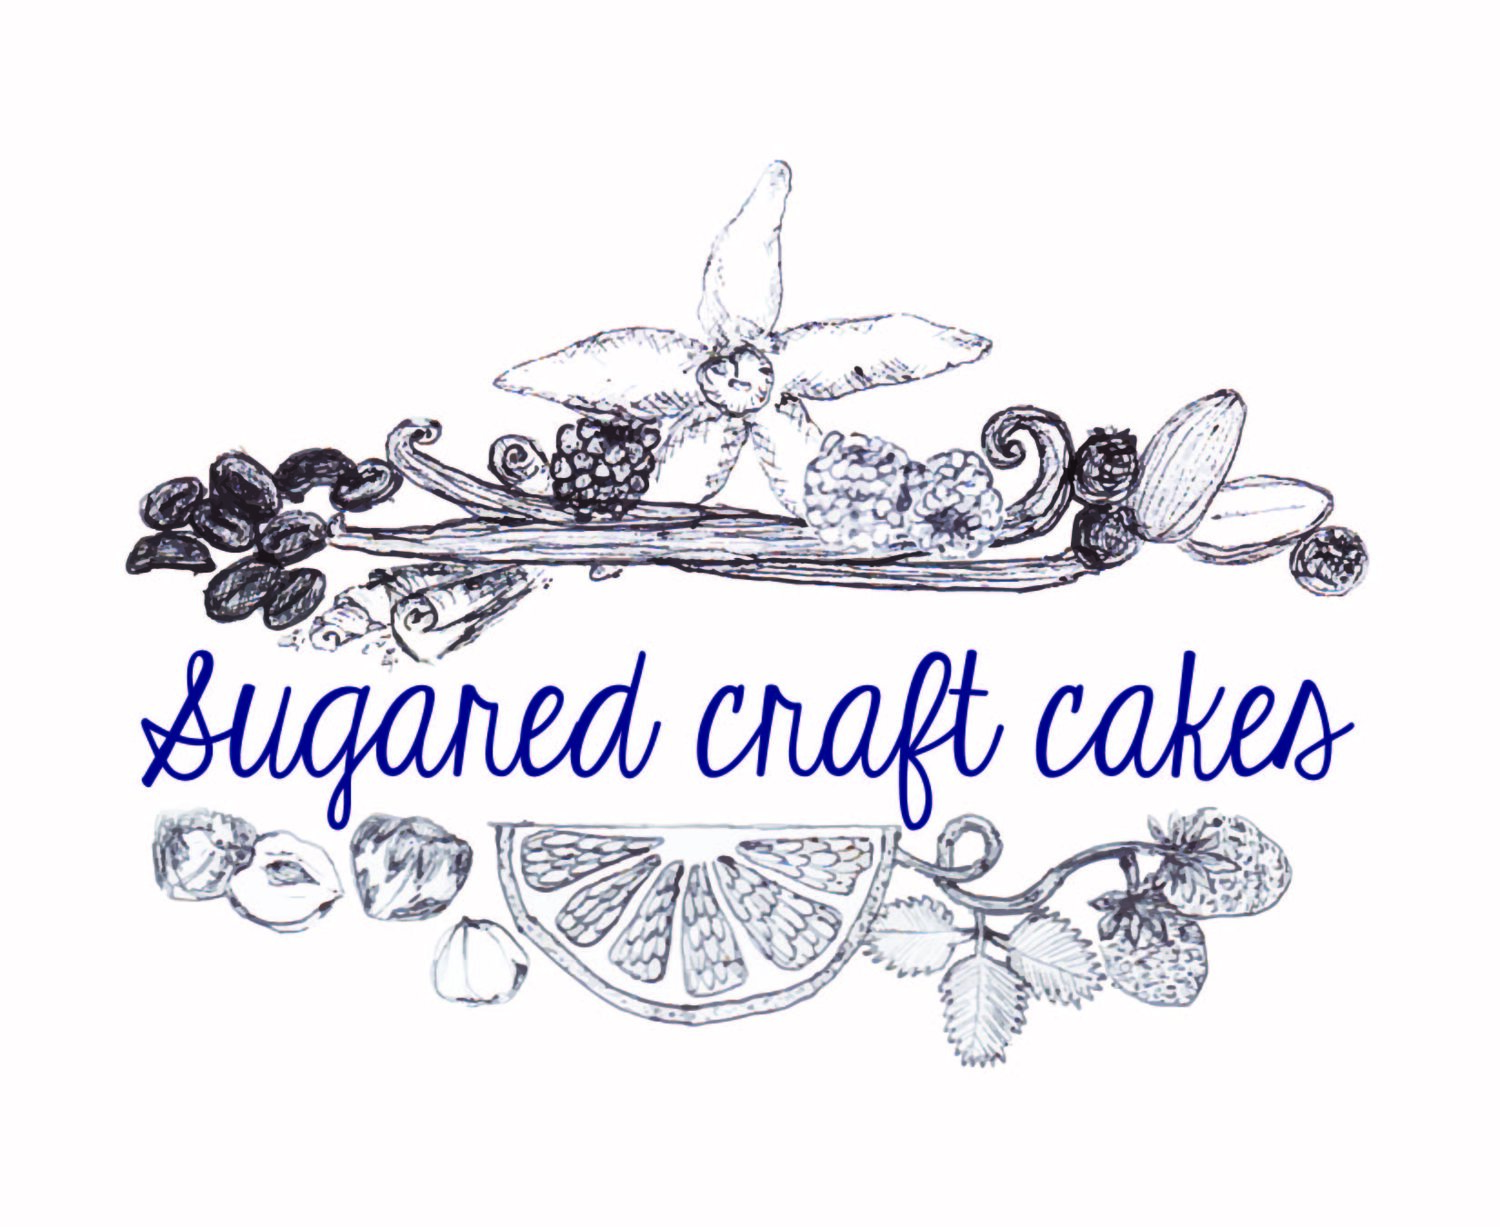 Sugared Craft Cakes